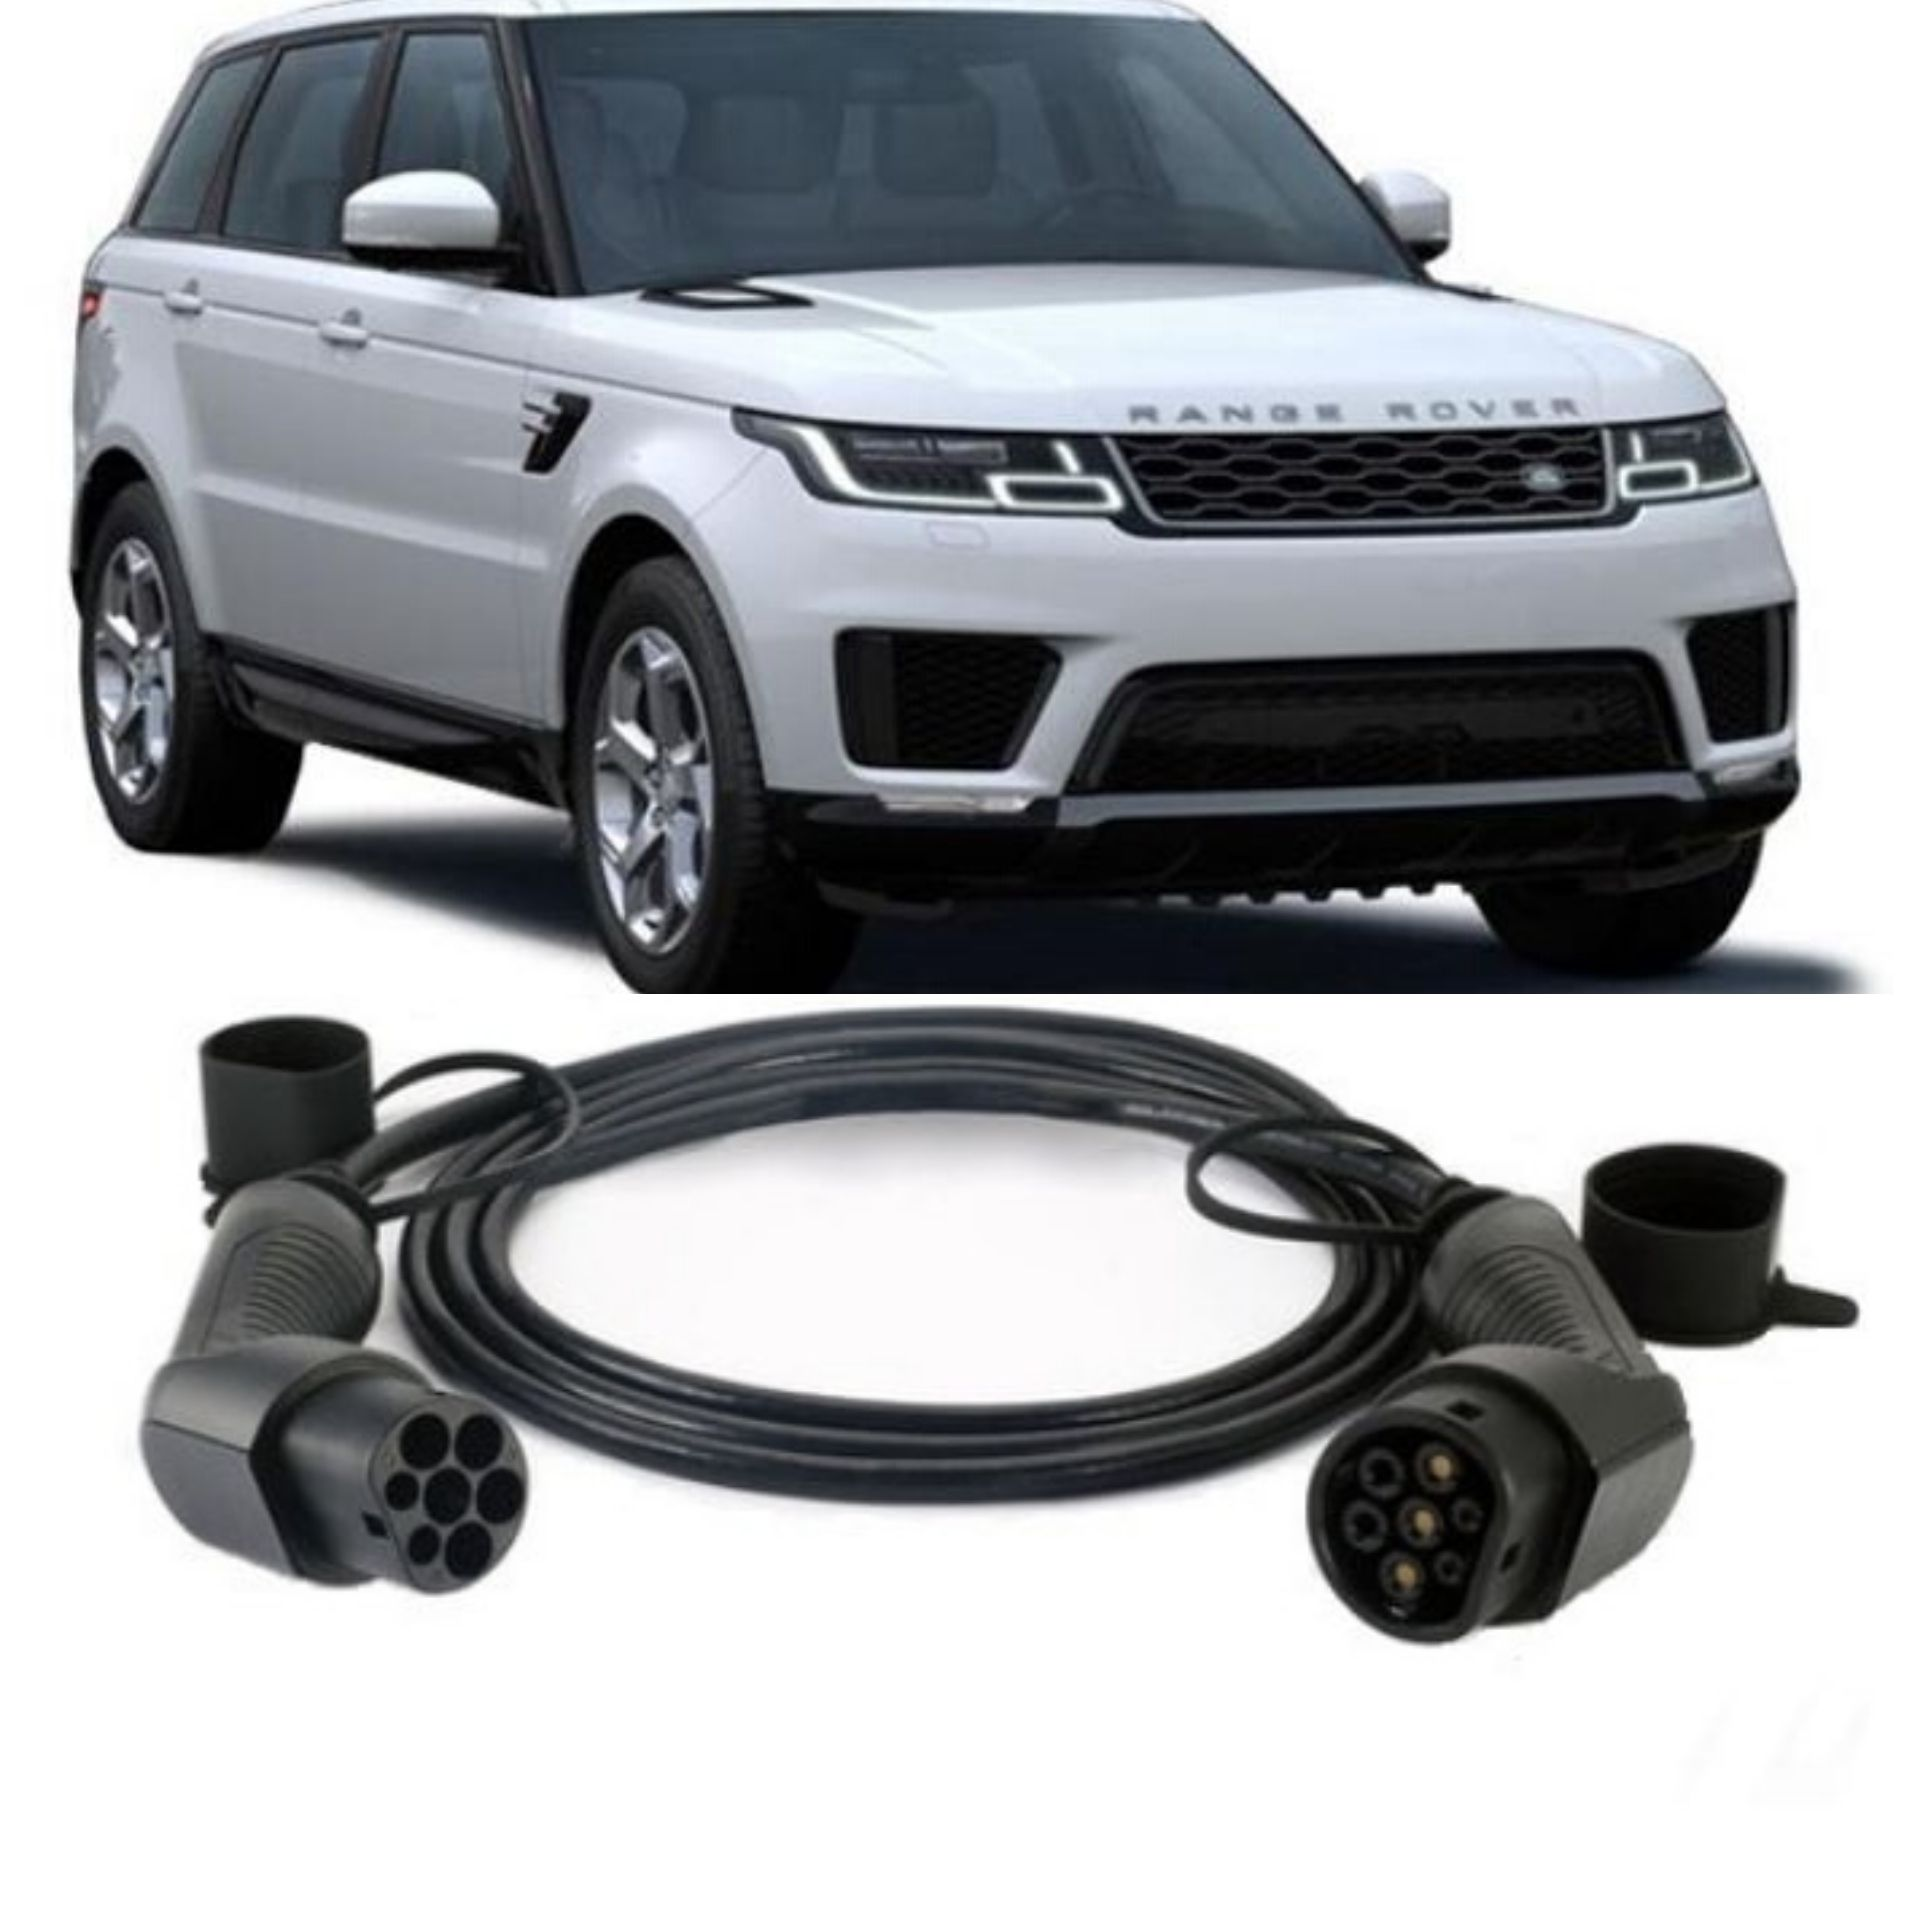 range rover charging cable